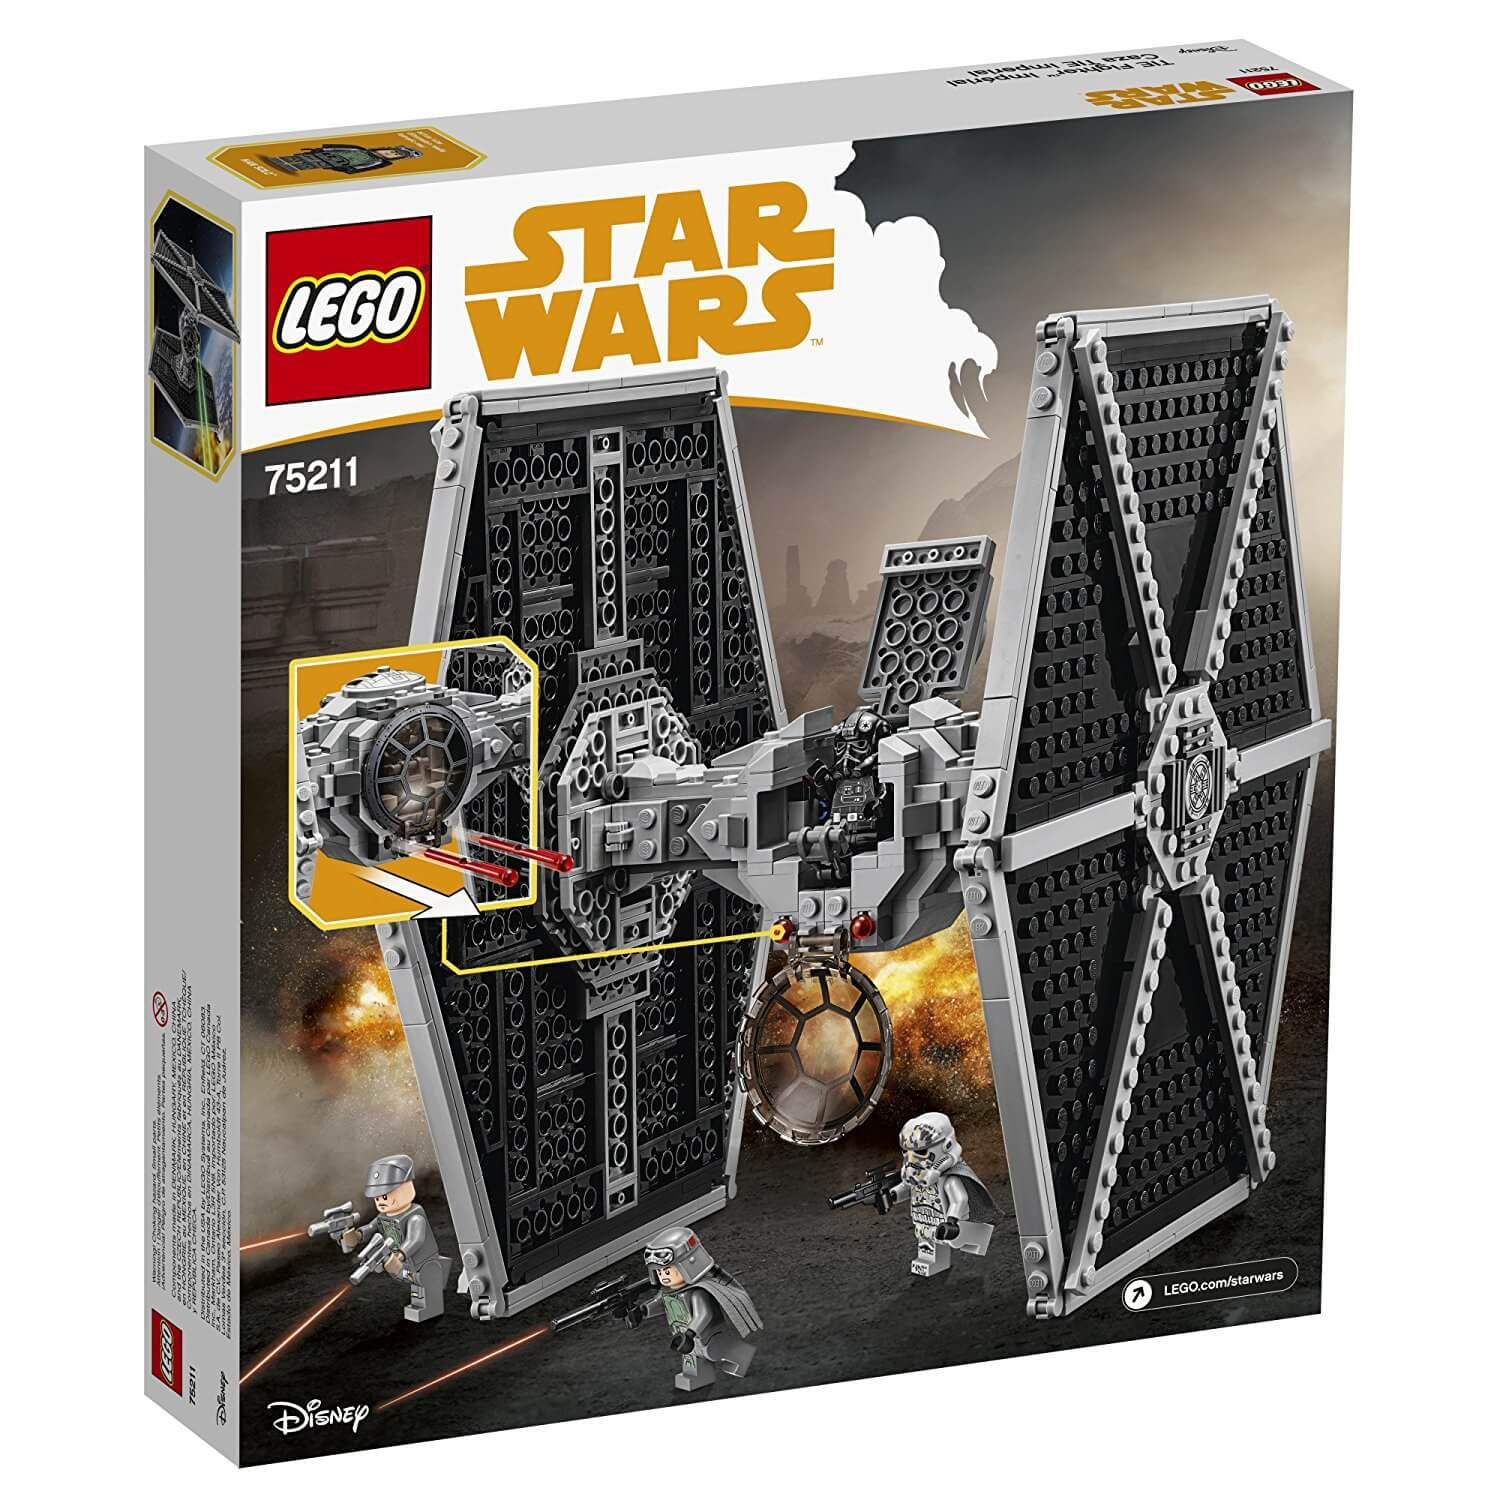 Mua đồ chơi LEGO 75211 - LEGO Star Wars 75211 - Phi Thuyền TIE Fighter Hạng Nặng (LEGO 75211 Imperial TIE Fighter)